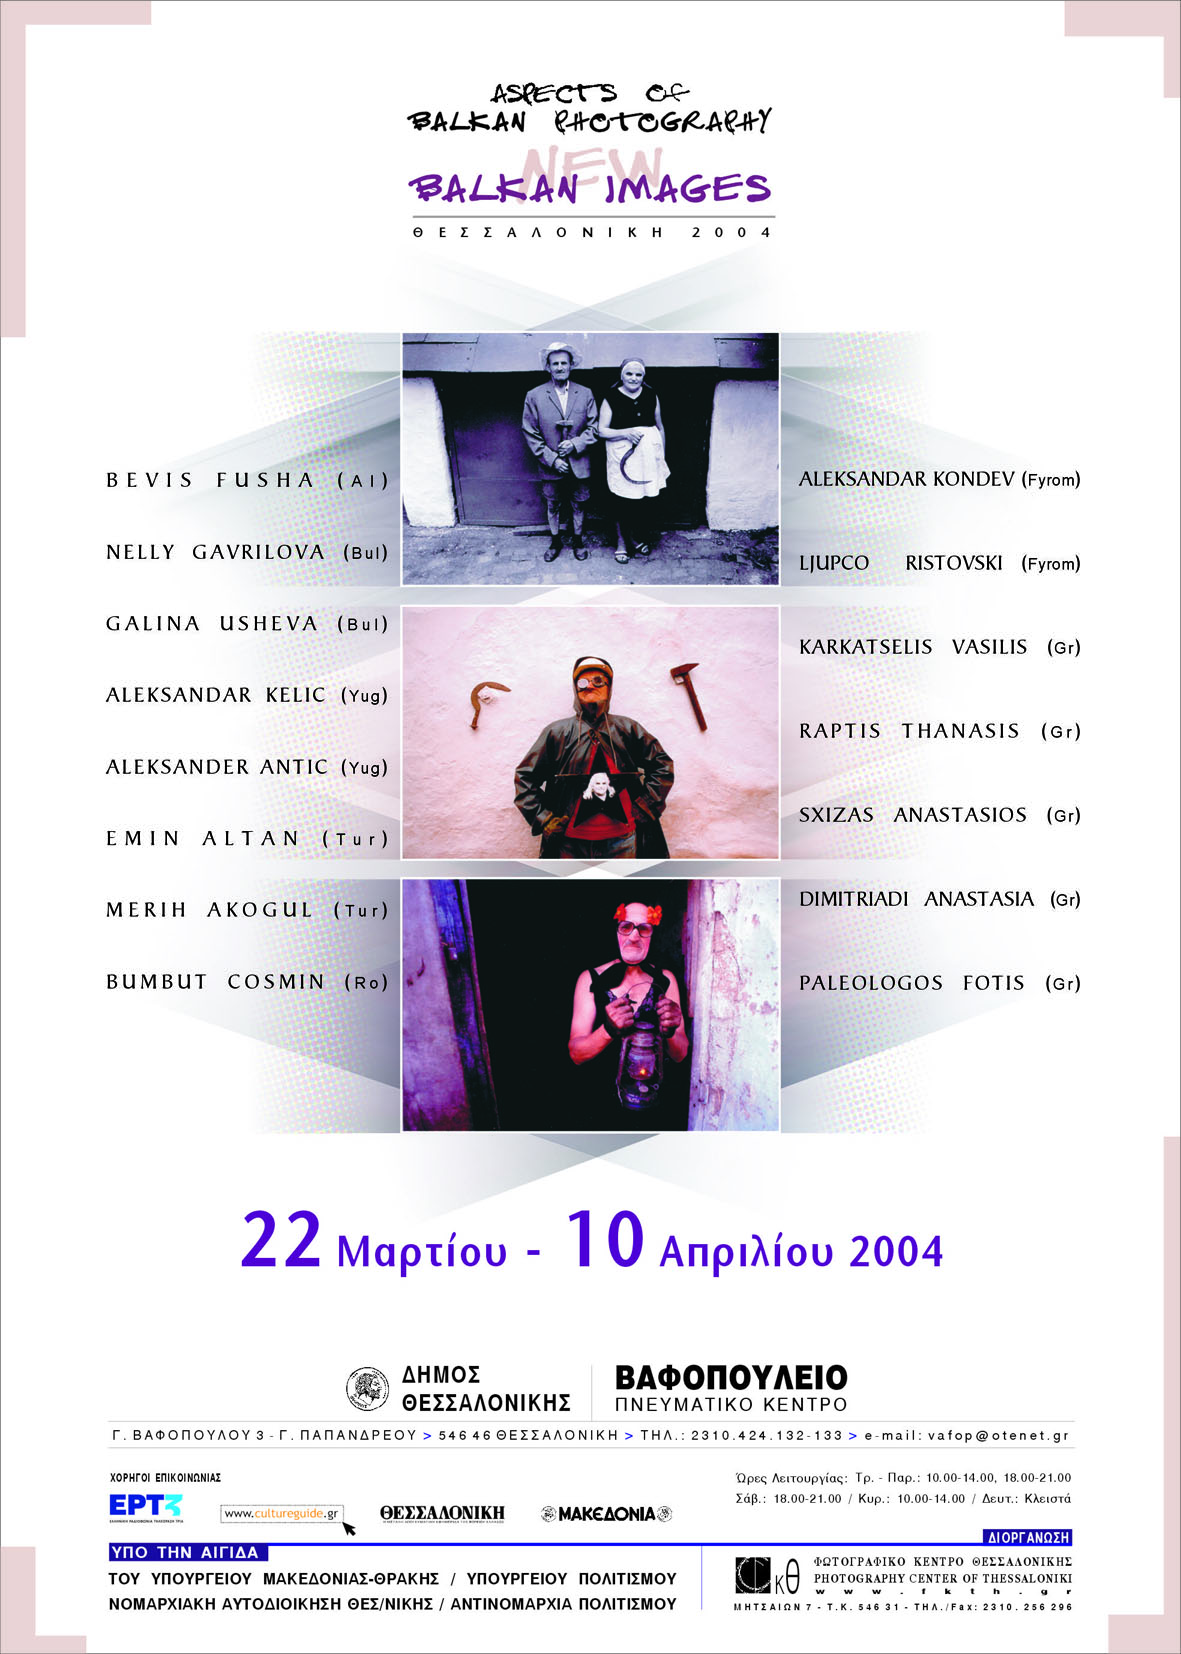 ASPECTS OF BALKAN PHOTOGRAPHY-NEW BALKAN IMAGES-THESSALONIKI 2004